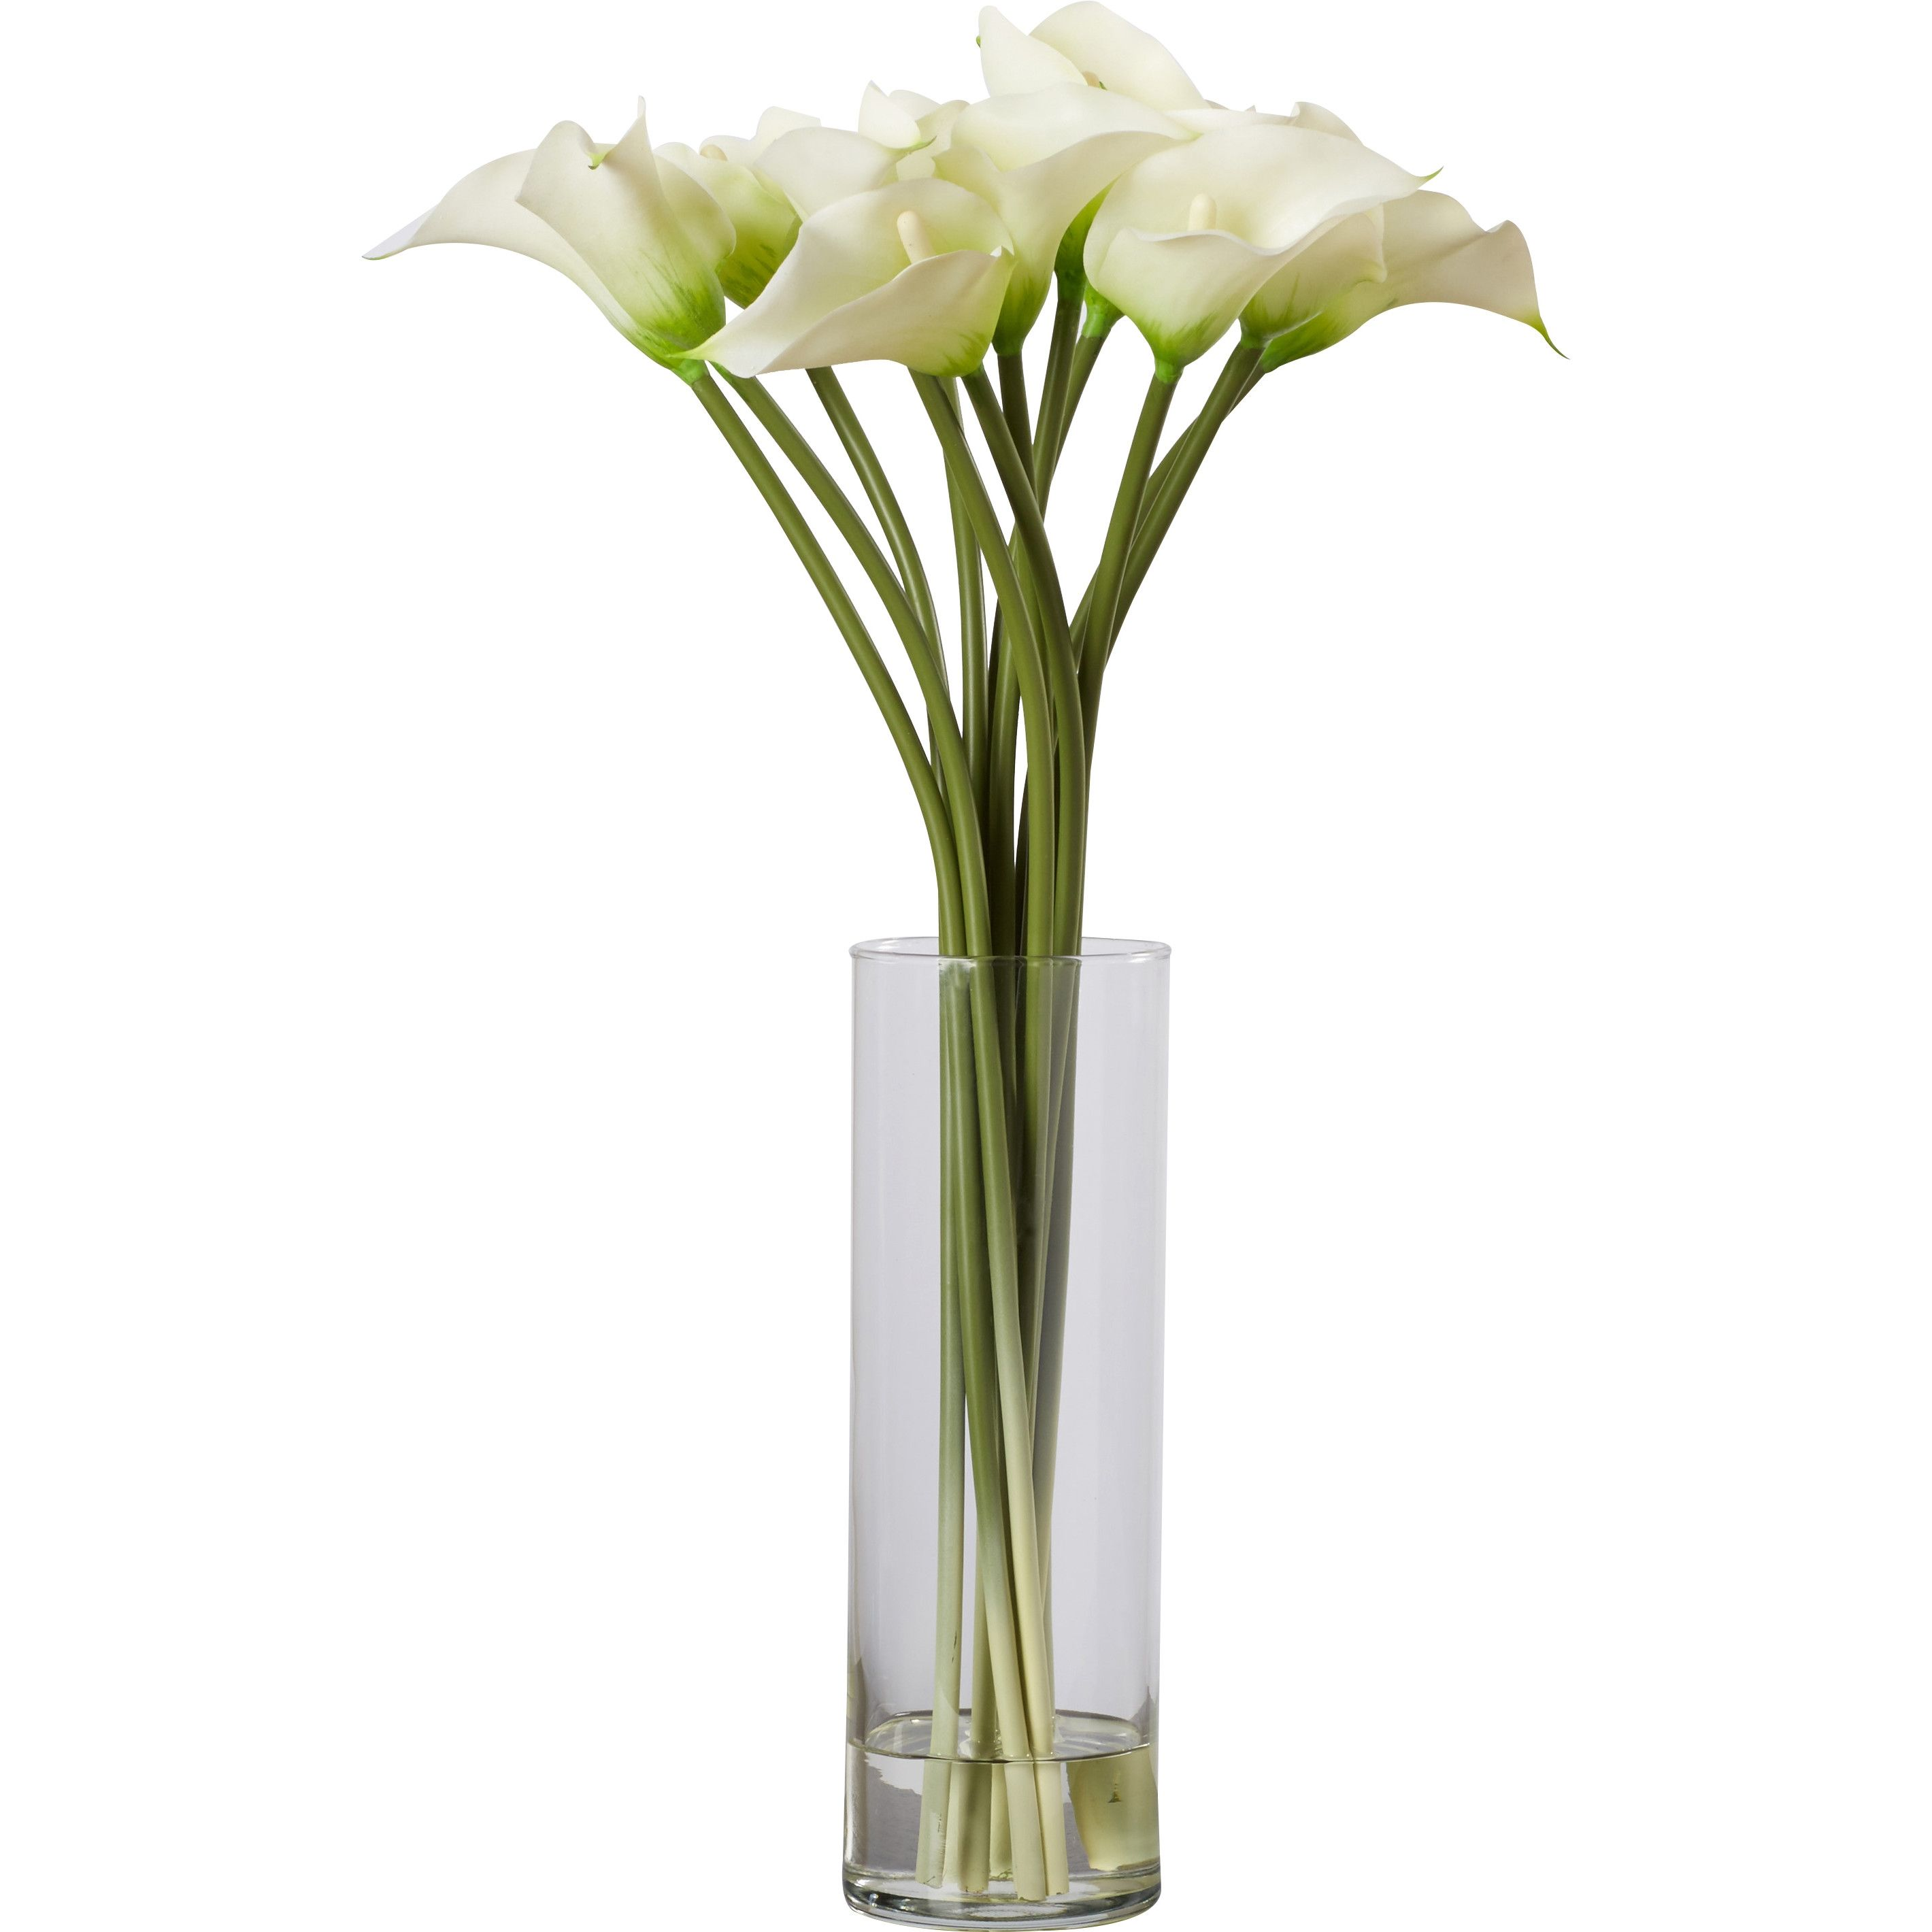 Flower vase online purchase vase pinterest online purchase flower vase online purchase reviewsmspy